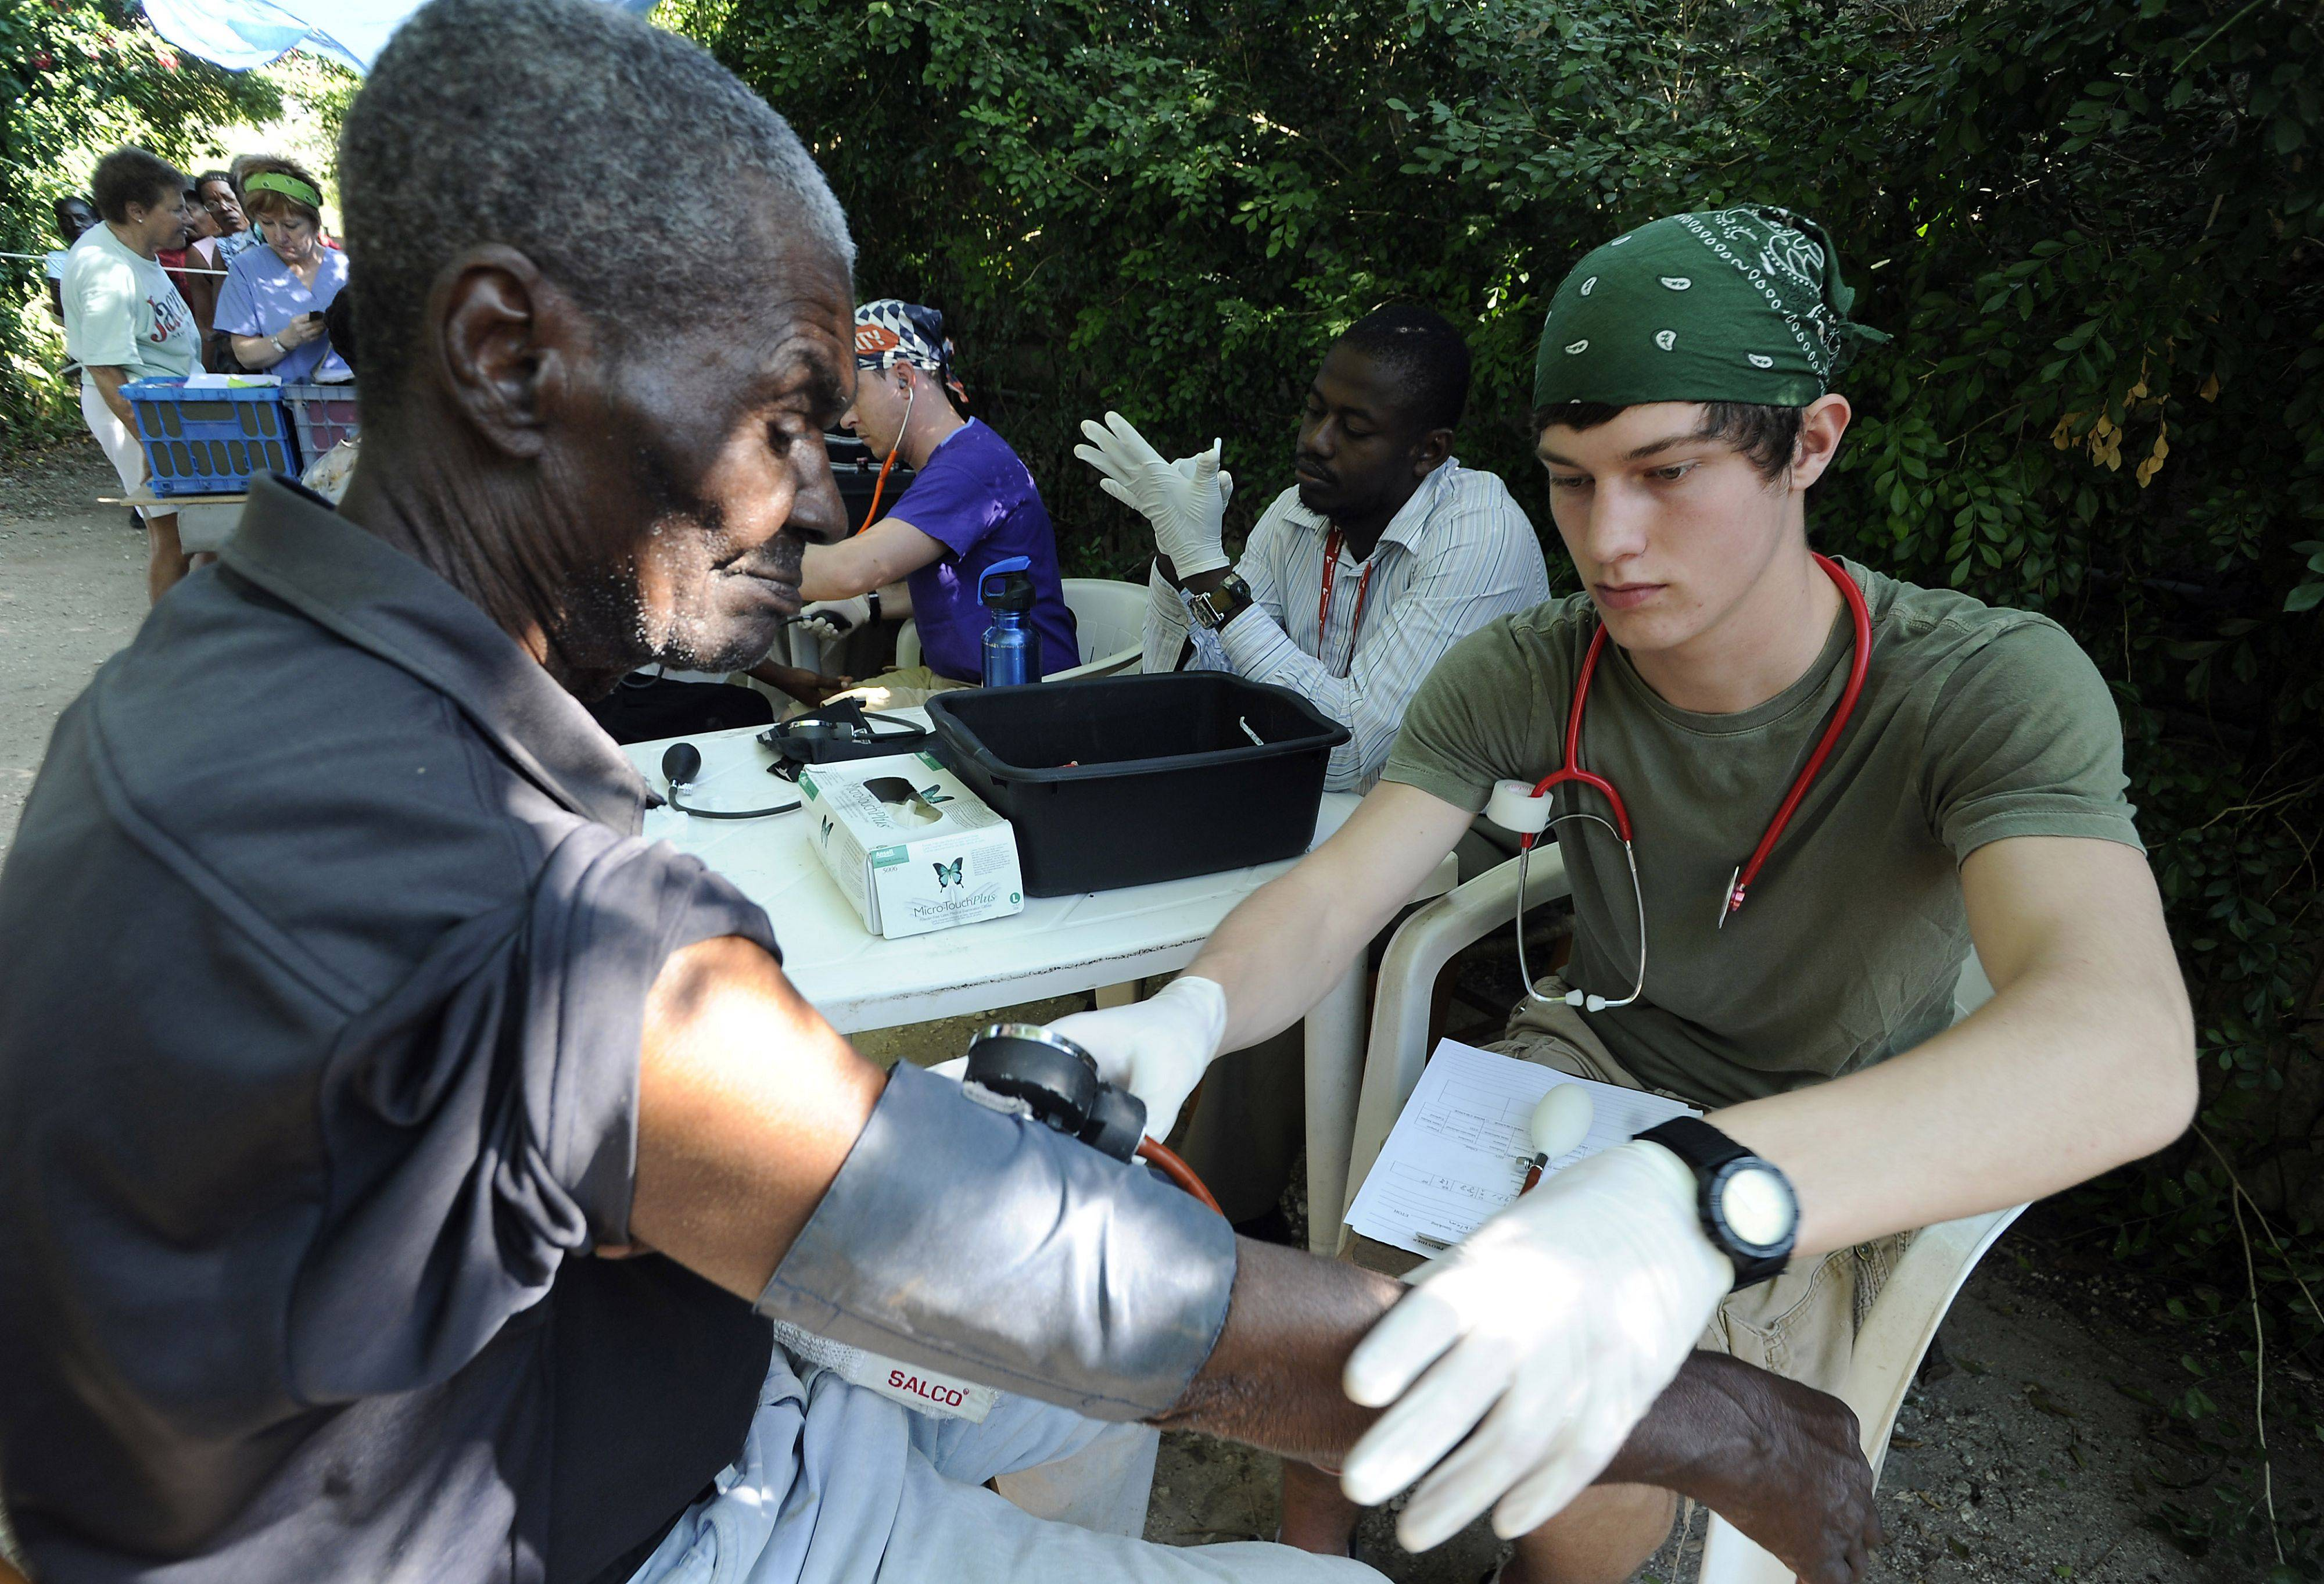 Josiah Ballantine, 18, of Elk Grove Village takes the blood pressure of a Haitian man at the Friends of the Children of Haiti clinic in Cyvadier, Haiti.